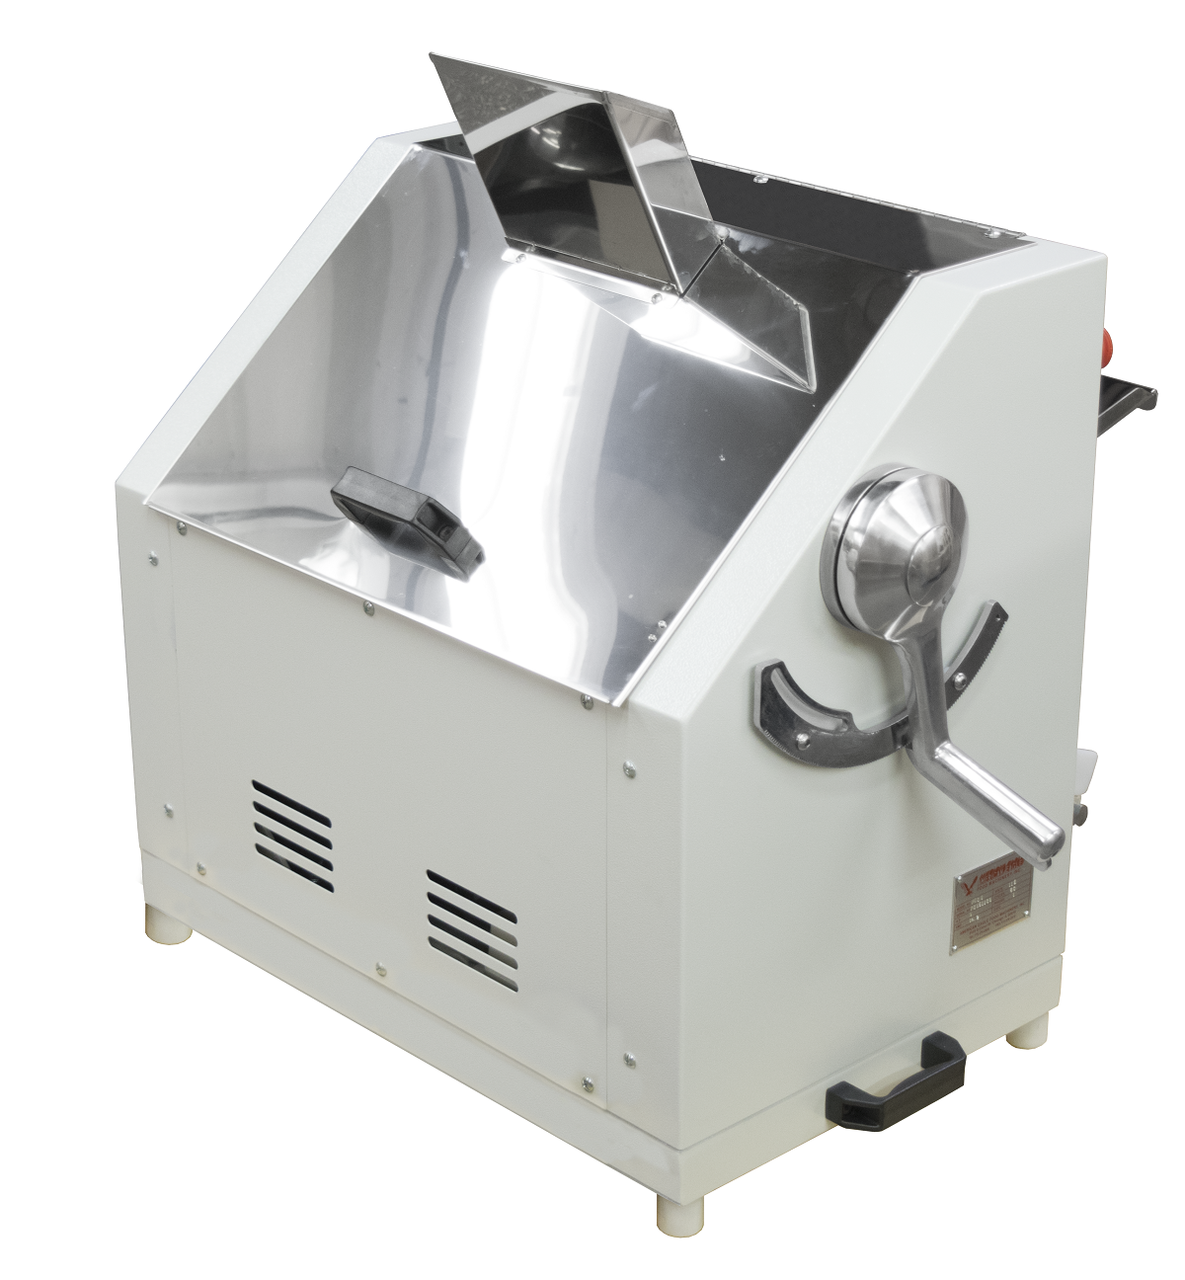 American Eagle Food Machinery Countertop Dough Roller, 115V/60Hz/1Ph, AE-PS01 - Back